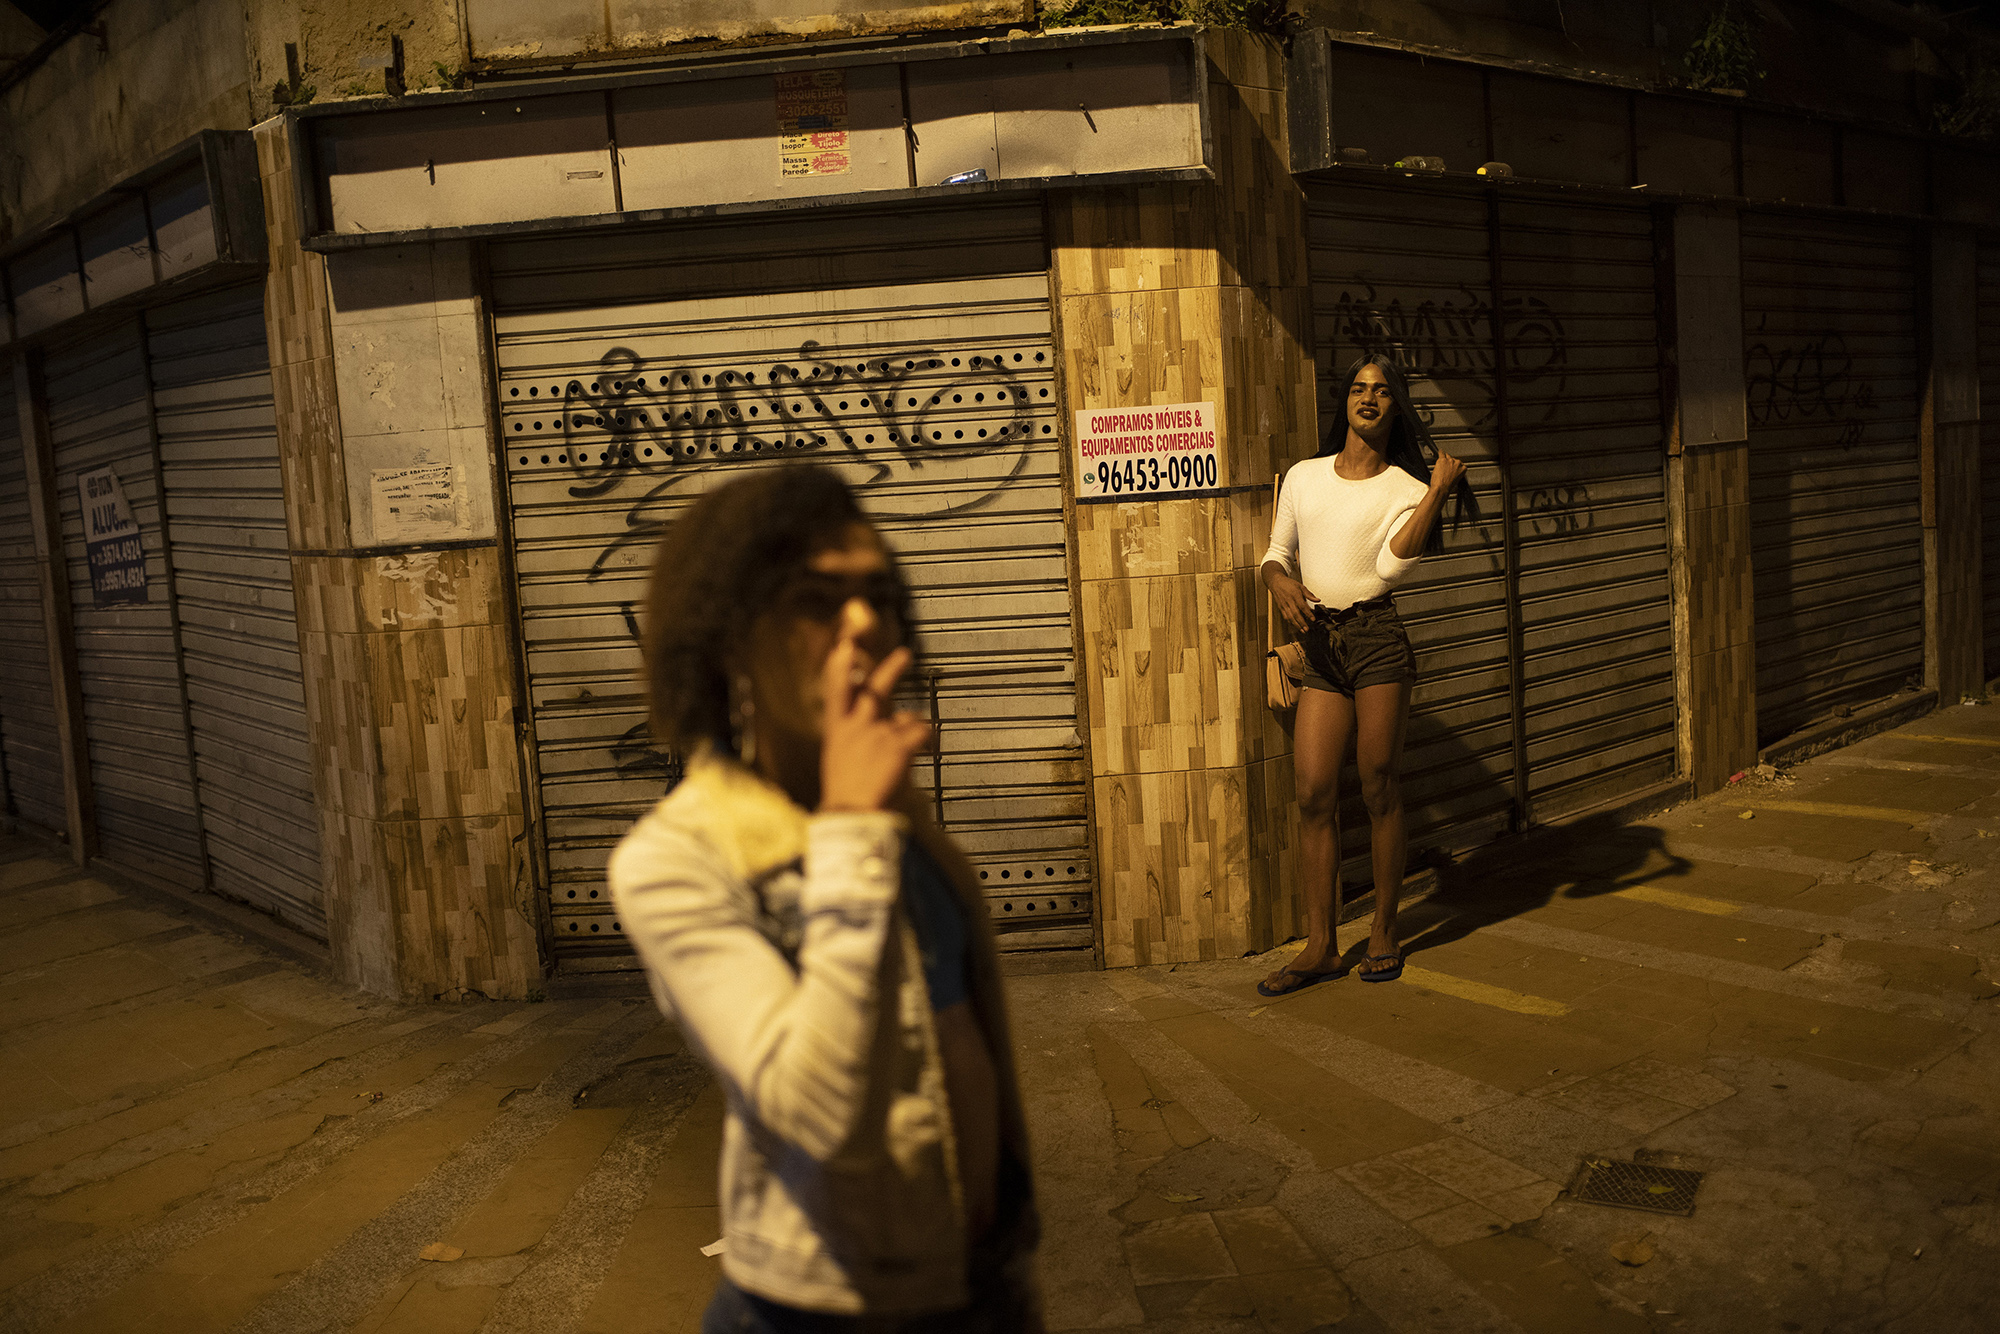 "Transgender sex worker Alice Larubia smokes a cigarette as she waits for customers in Niteroi, Brazil, Saturday, June 27, 2020, amid the new coronavirus pandemic. After a month quarantining at home with some financial support from family, Larubia resumed work in Niteroi, a city across the bay from Rio. ""Necessity spoke louder (than the pandemic) and I had to come back to the street,"" Larubia said while waiting for clients with a small group of colleagues."